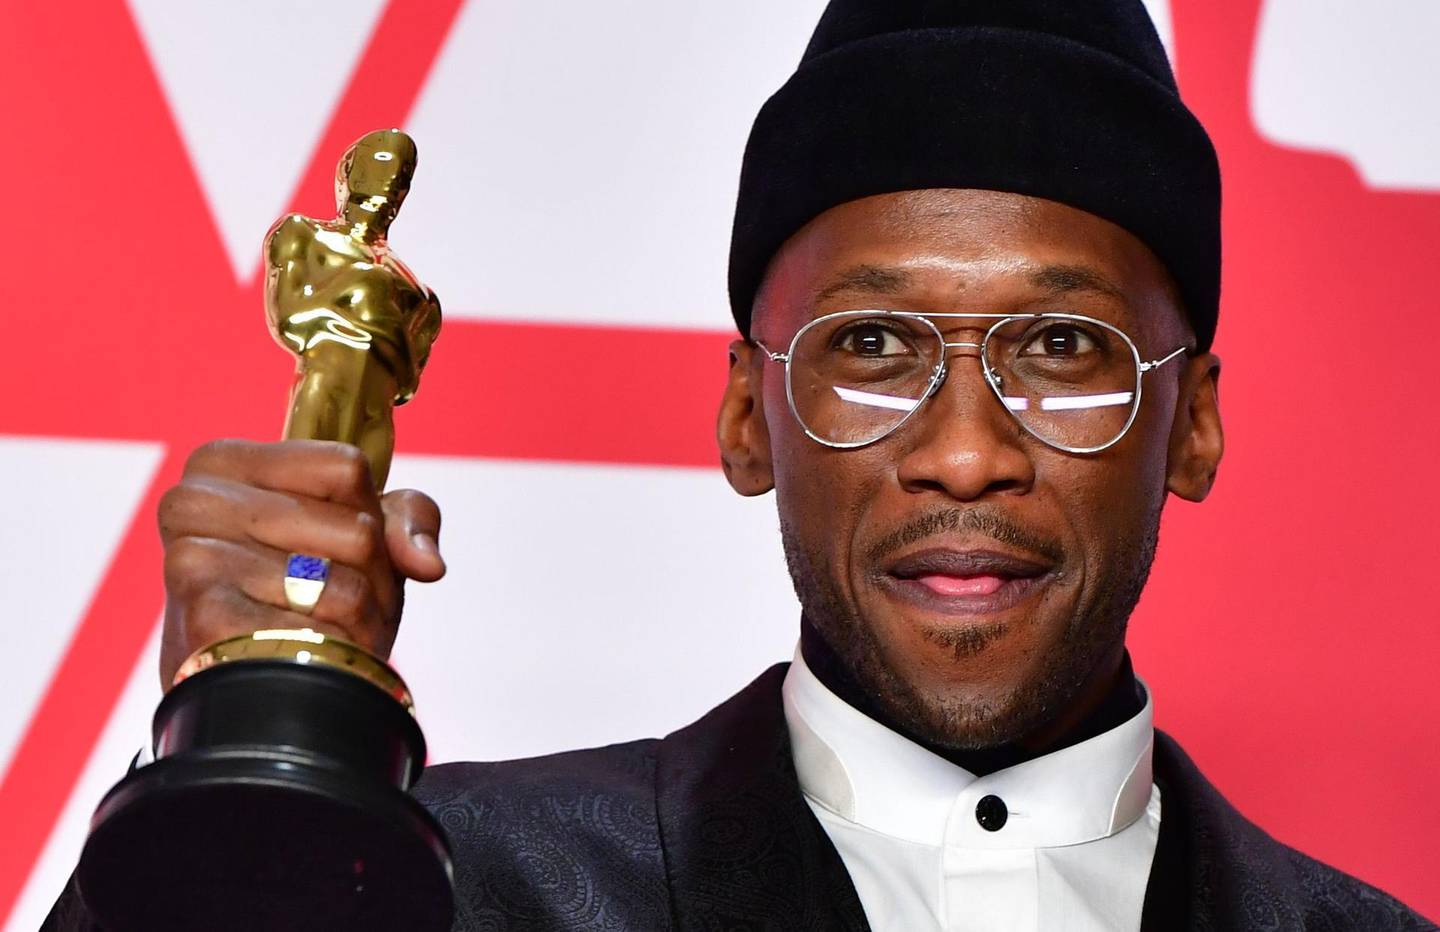 """TOPSHOT - Best Supporting Actor winner for """"Green Book"""" Mahershala Ali  poses in the press room with his Oscar during the 91st Annual Academy Awards at the Dolby Theater in Hollywood, California on February 24, 2019.  / AFP / FREDERIC J. BROWN"""